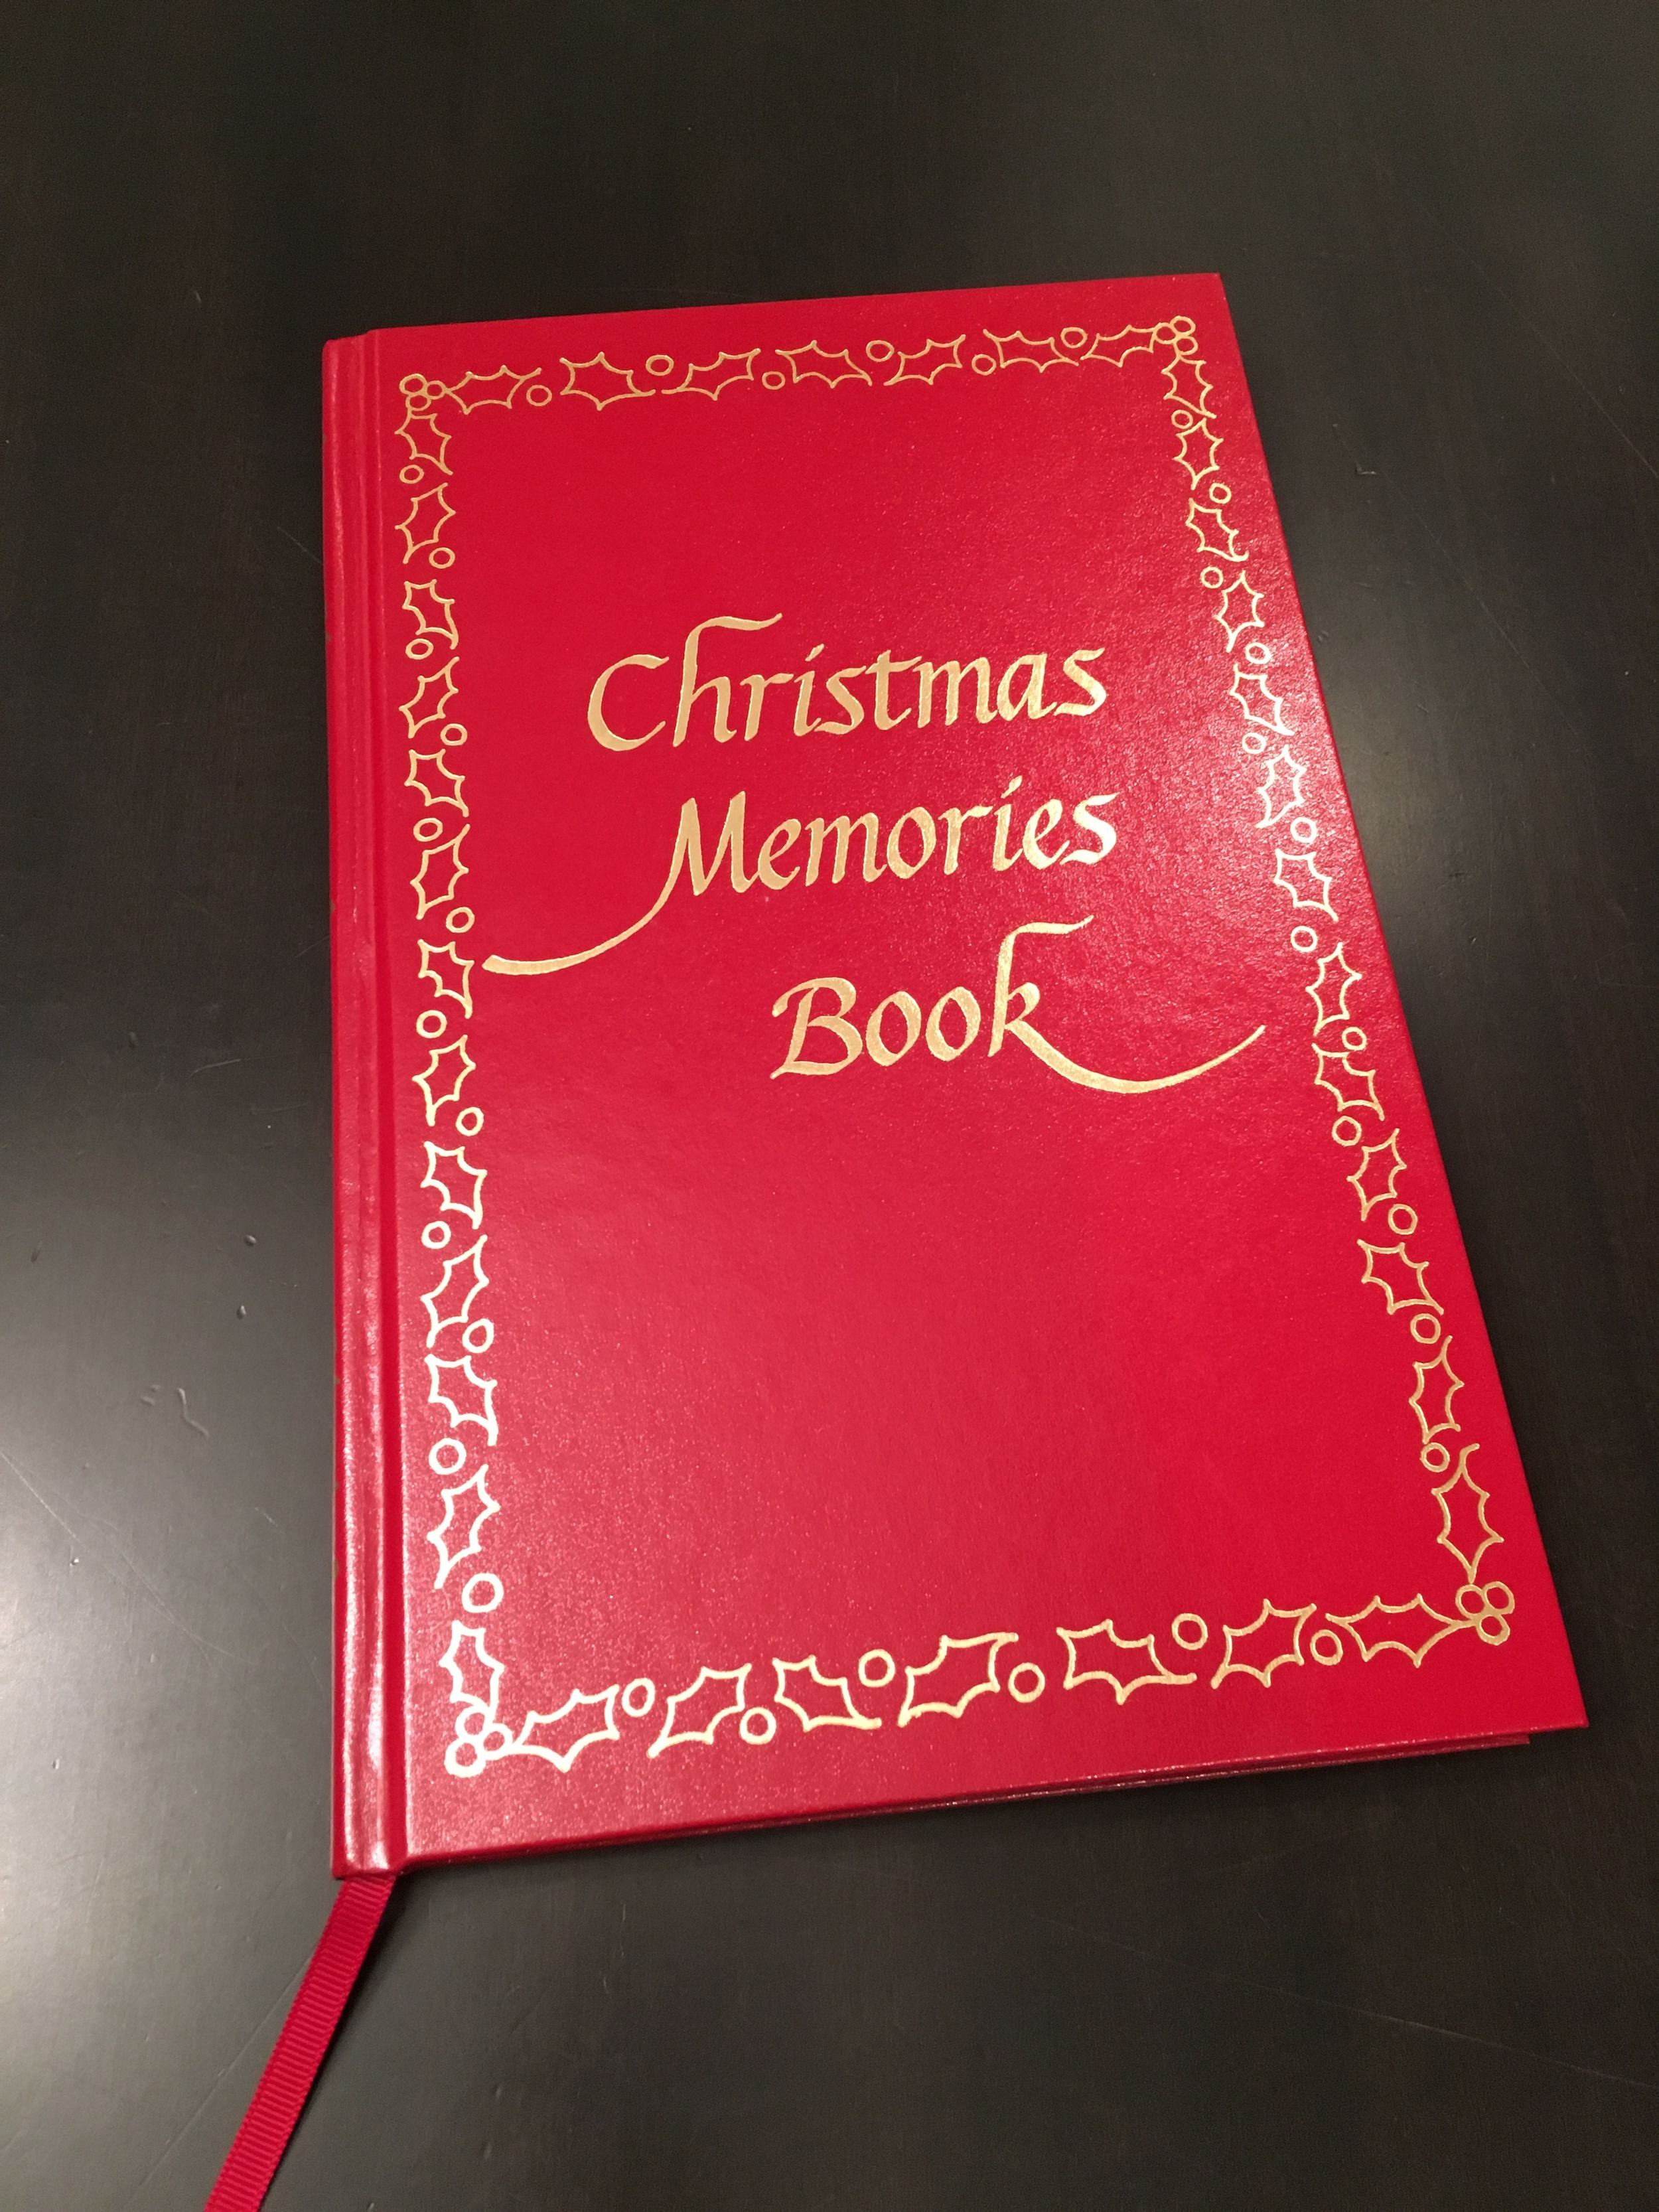 Here is a  thoughtful  Pinch to give to your family.A couple of years ago I bought this book off of Amazon to minimize the pressure I put on myself to have these wonderful scrapbooks of our holiday seasons. Nowadays I put a copy of the holiday card we send out each year and then try to answer some of the pre-written questions inside to correspond.